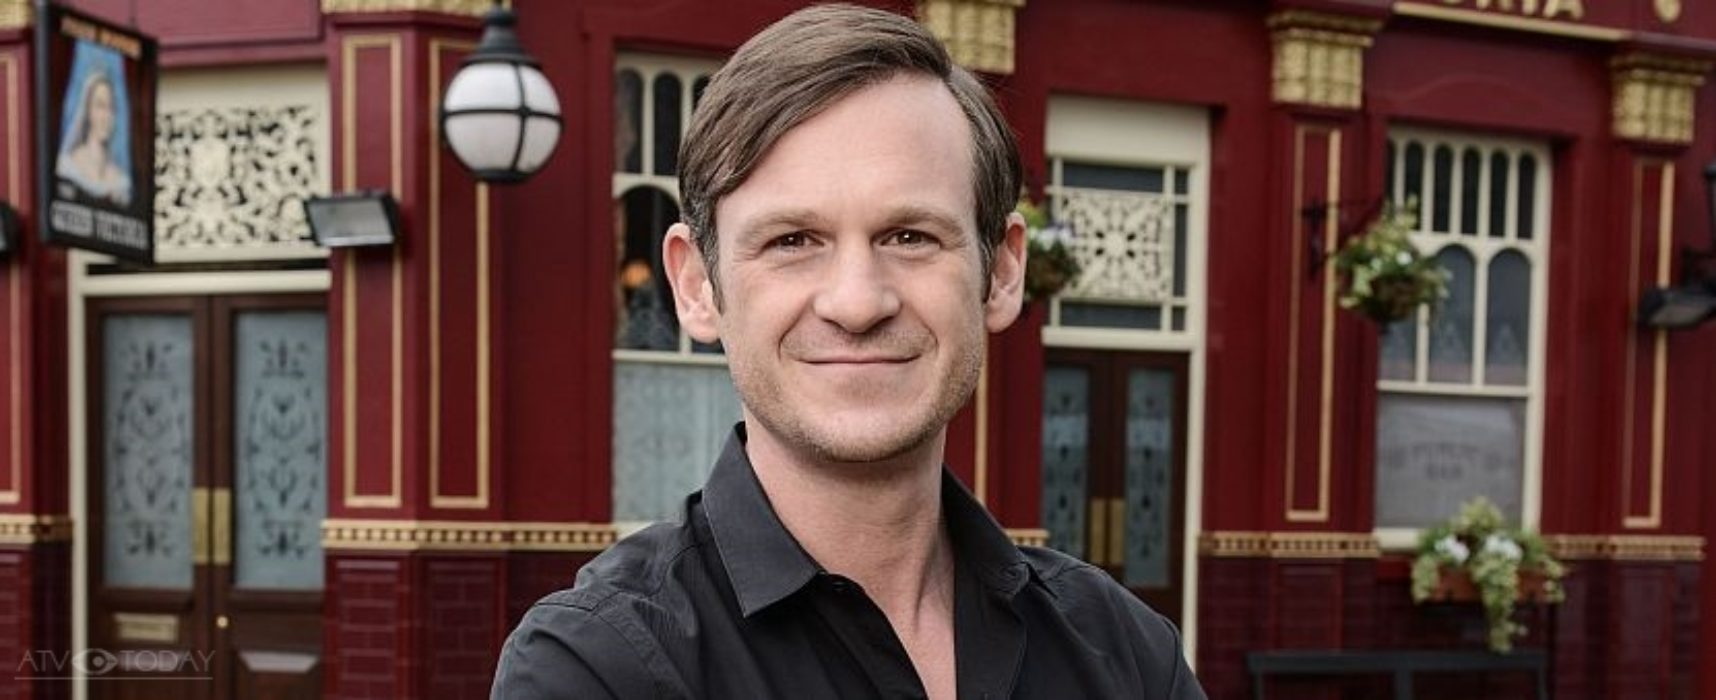 Dominic Treadwell-Collins to launch ITV Studios production spin-off